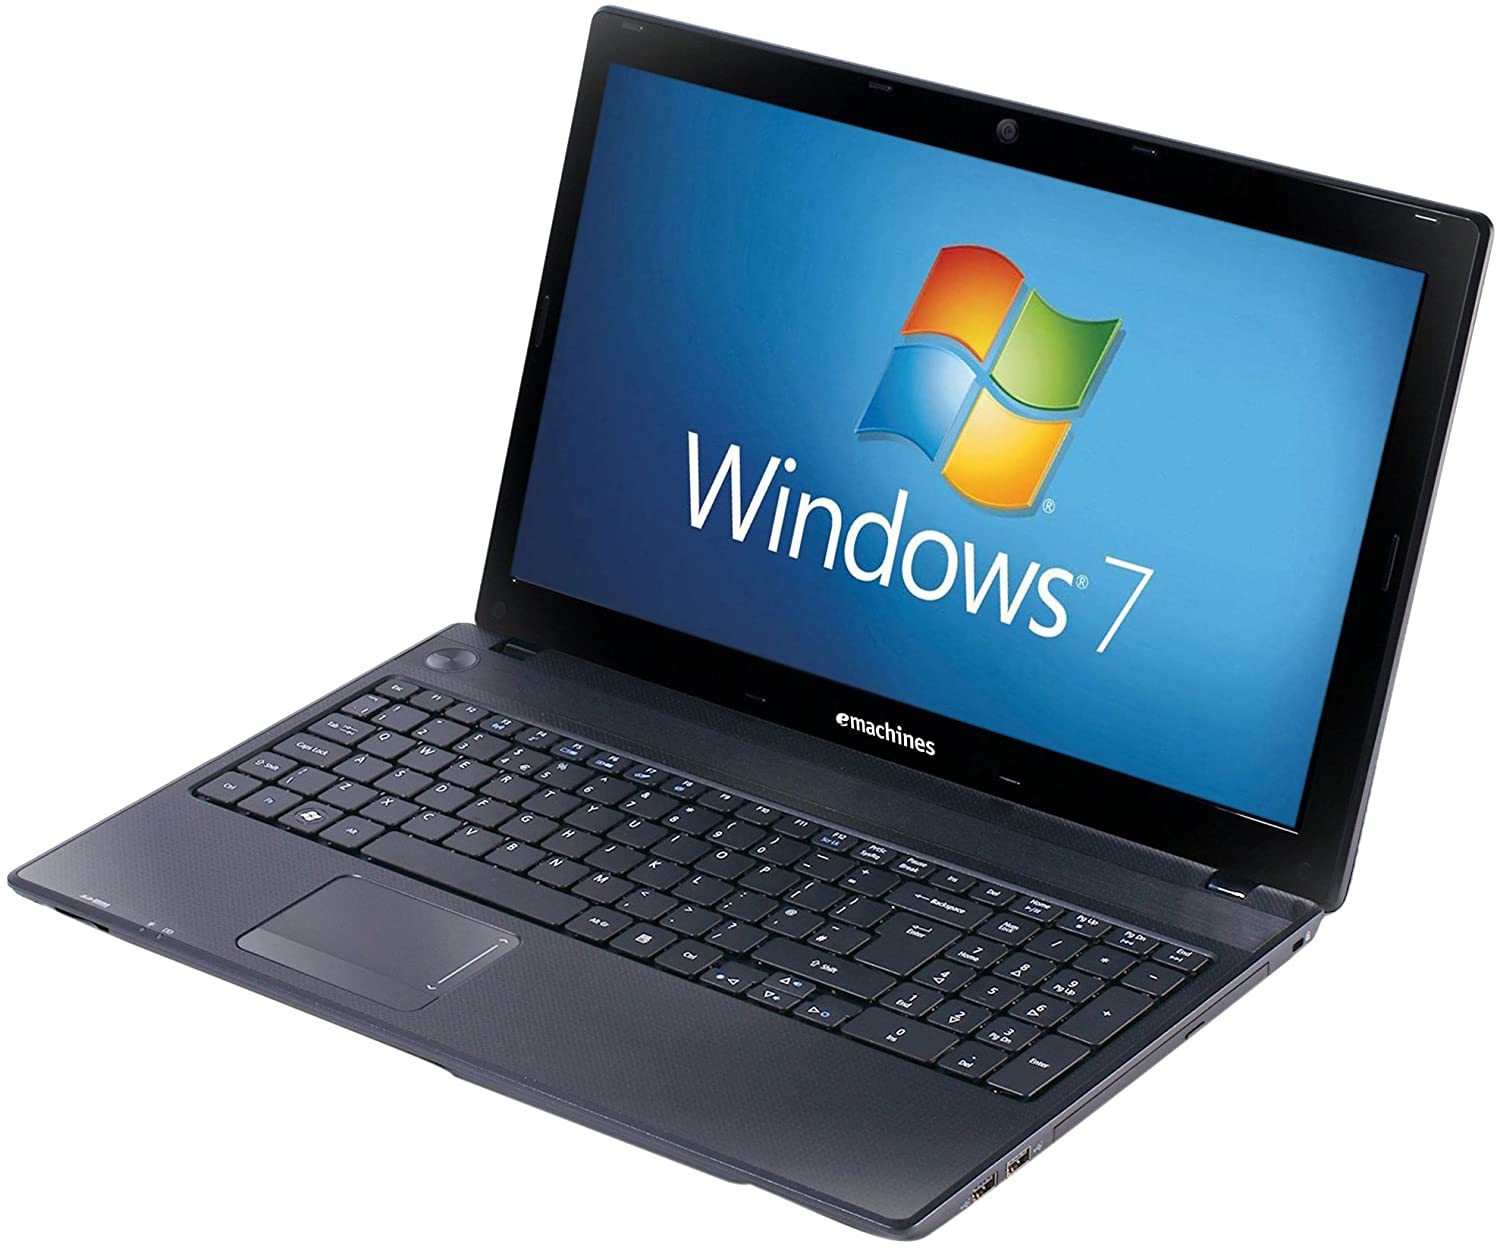 EMACHINES E529 DOWNLOAD DRIVERS